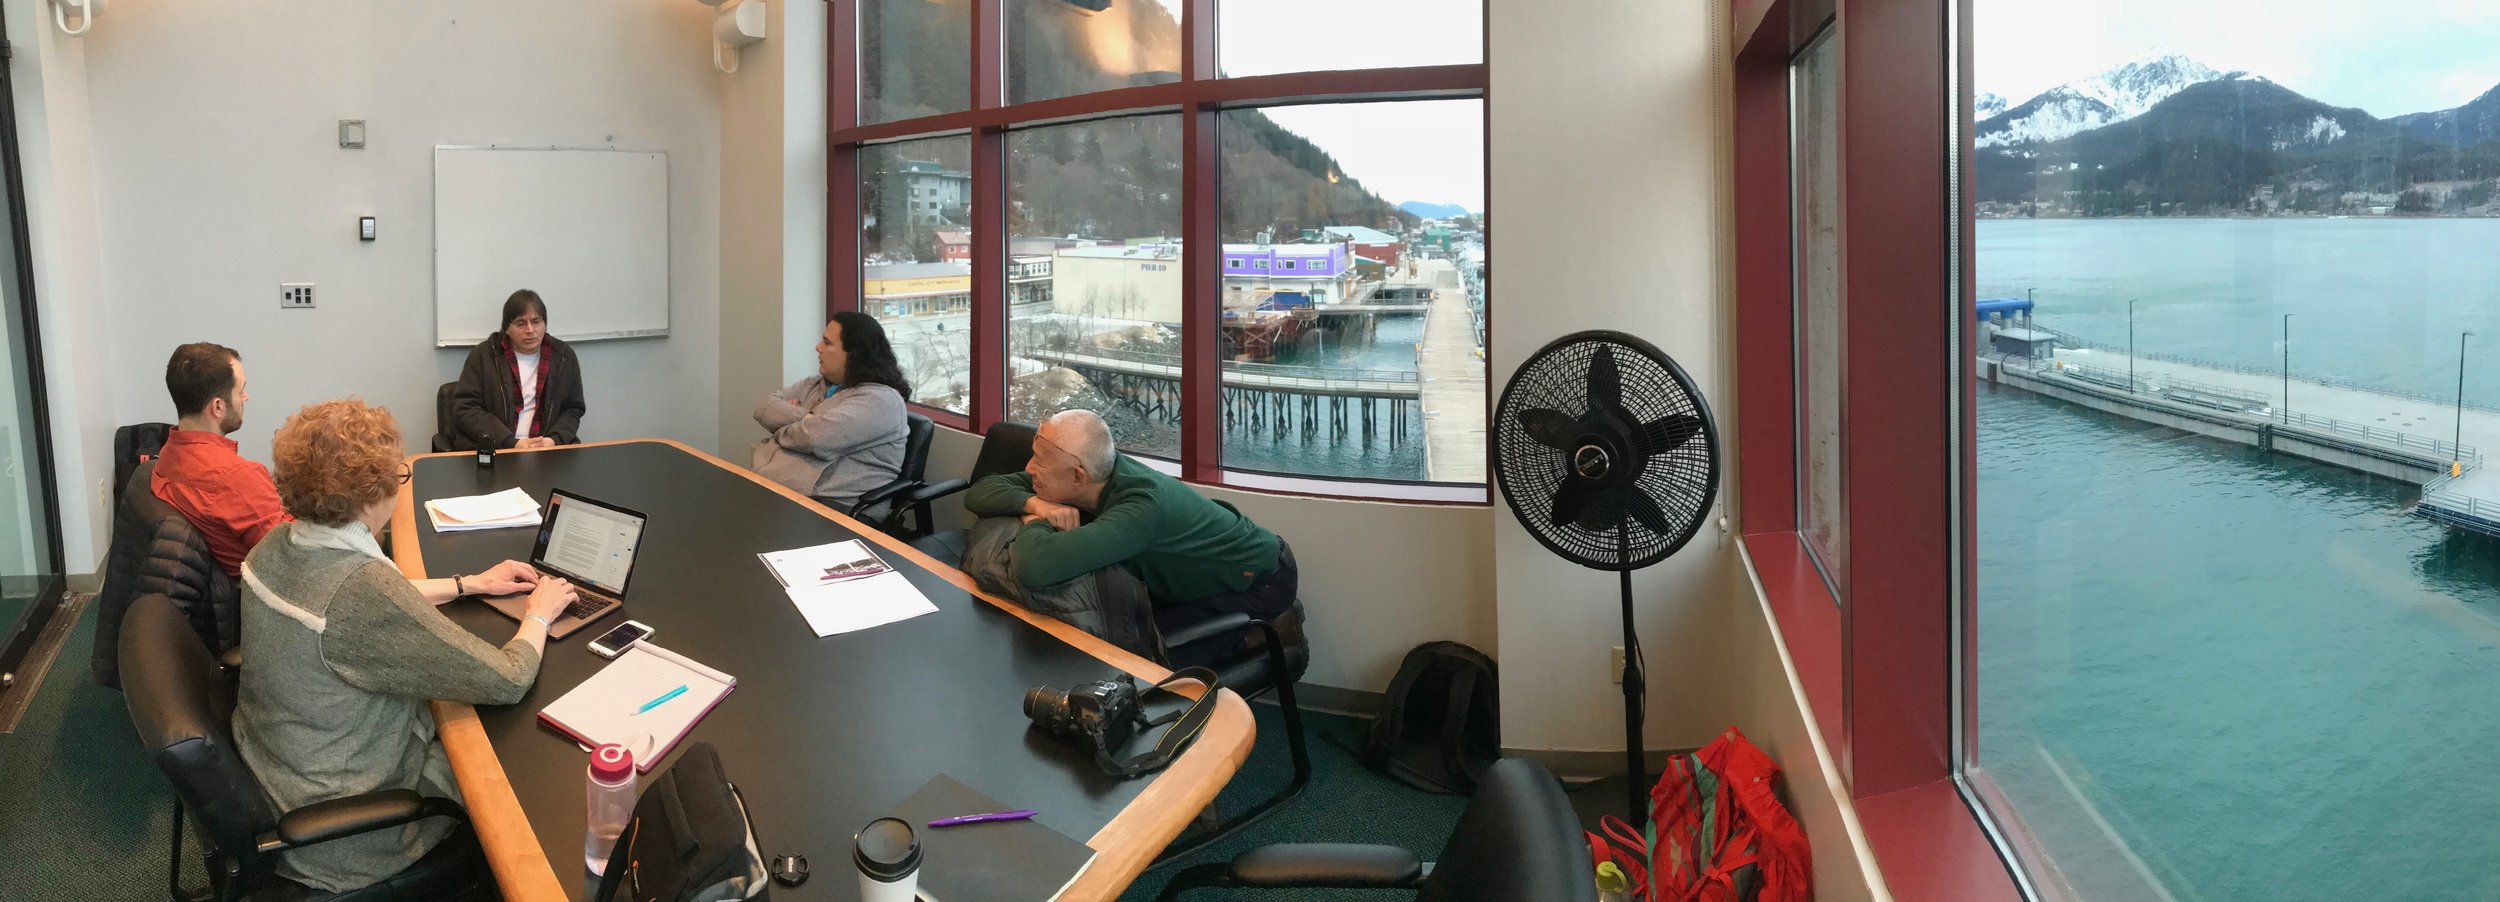 Allan Peters and Ping Chong + Co. interview team, Juneau Downtown Library, February 2018